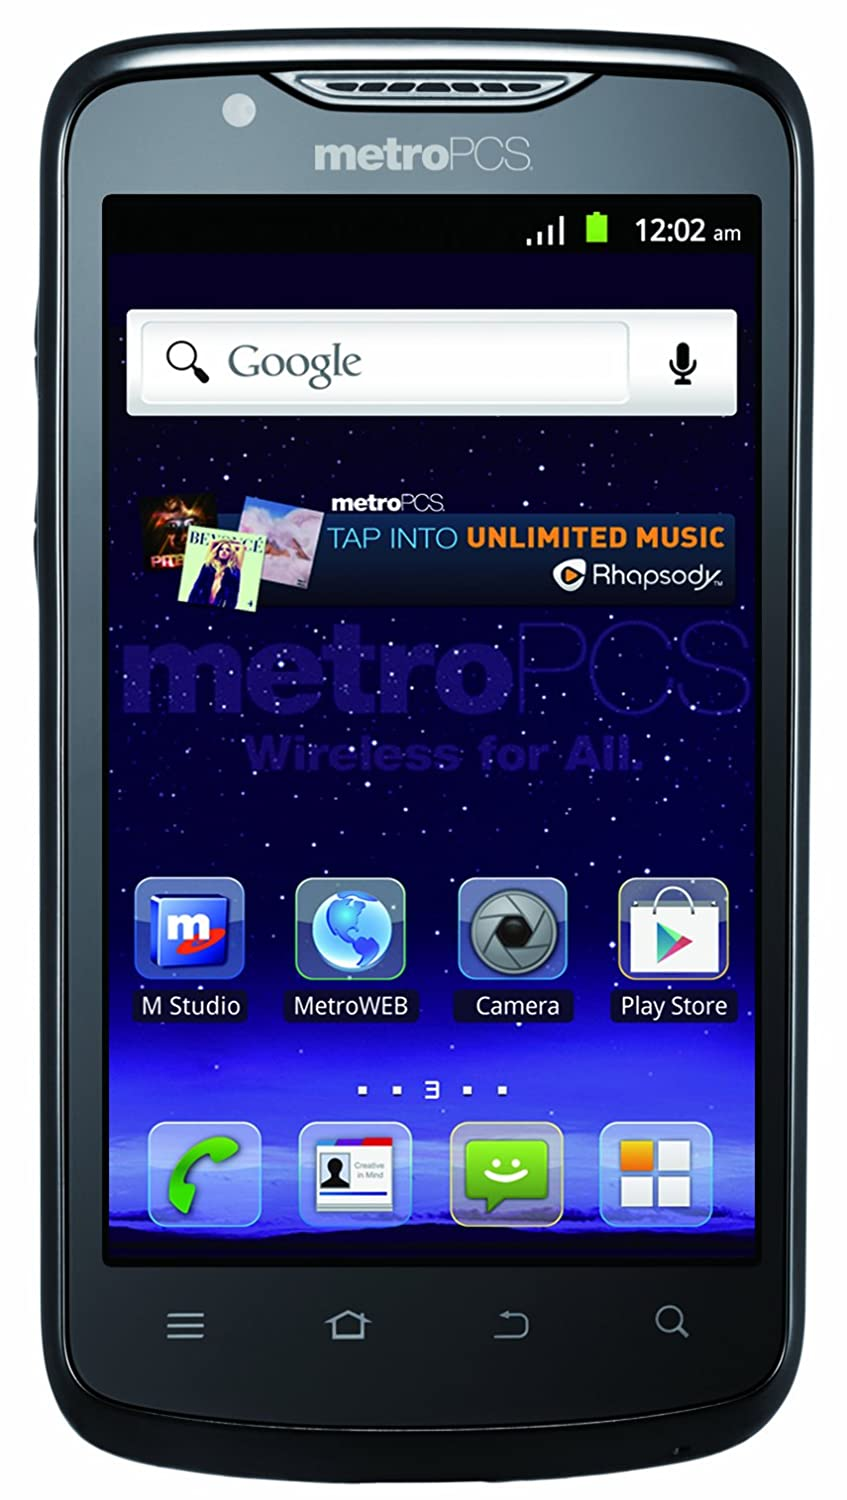 com zte anthem g lte prepaid android phone metropcs com zte anthem 4g lte prepaid android phone metropcs cell phones accessories